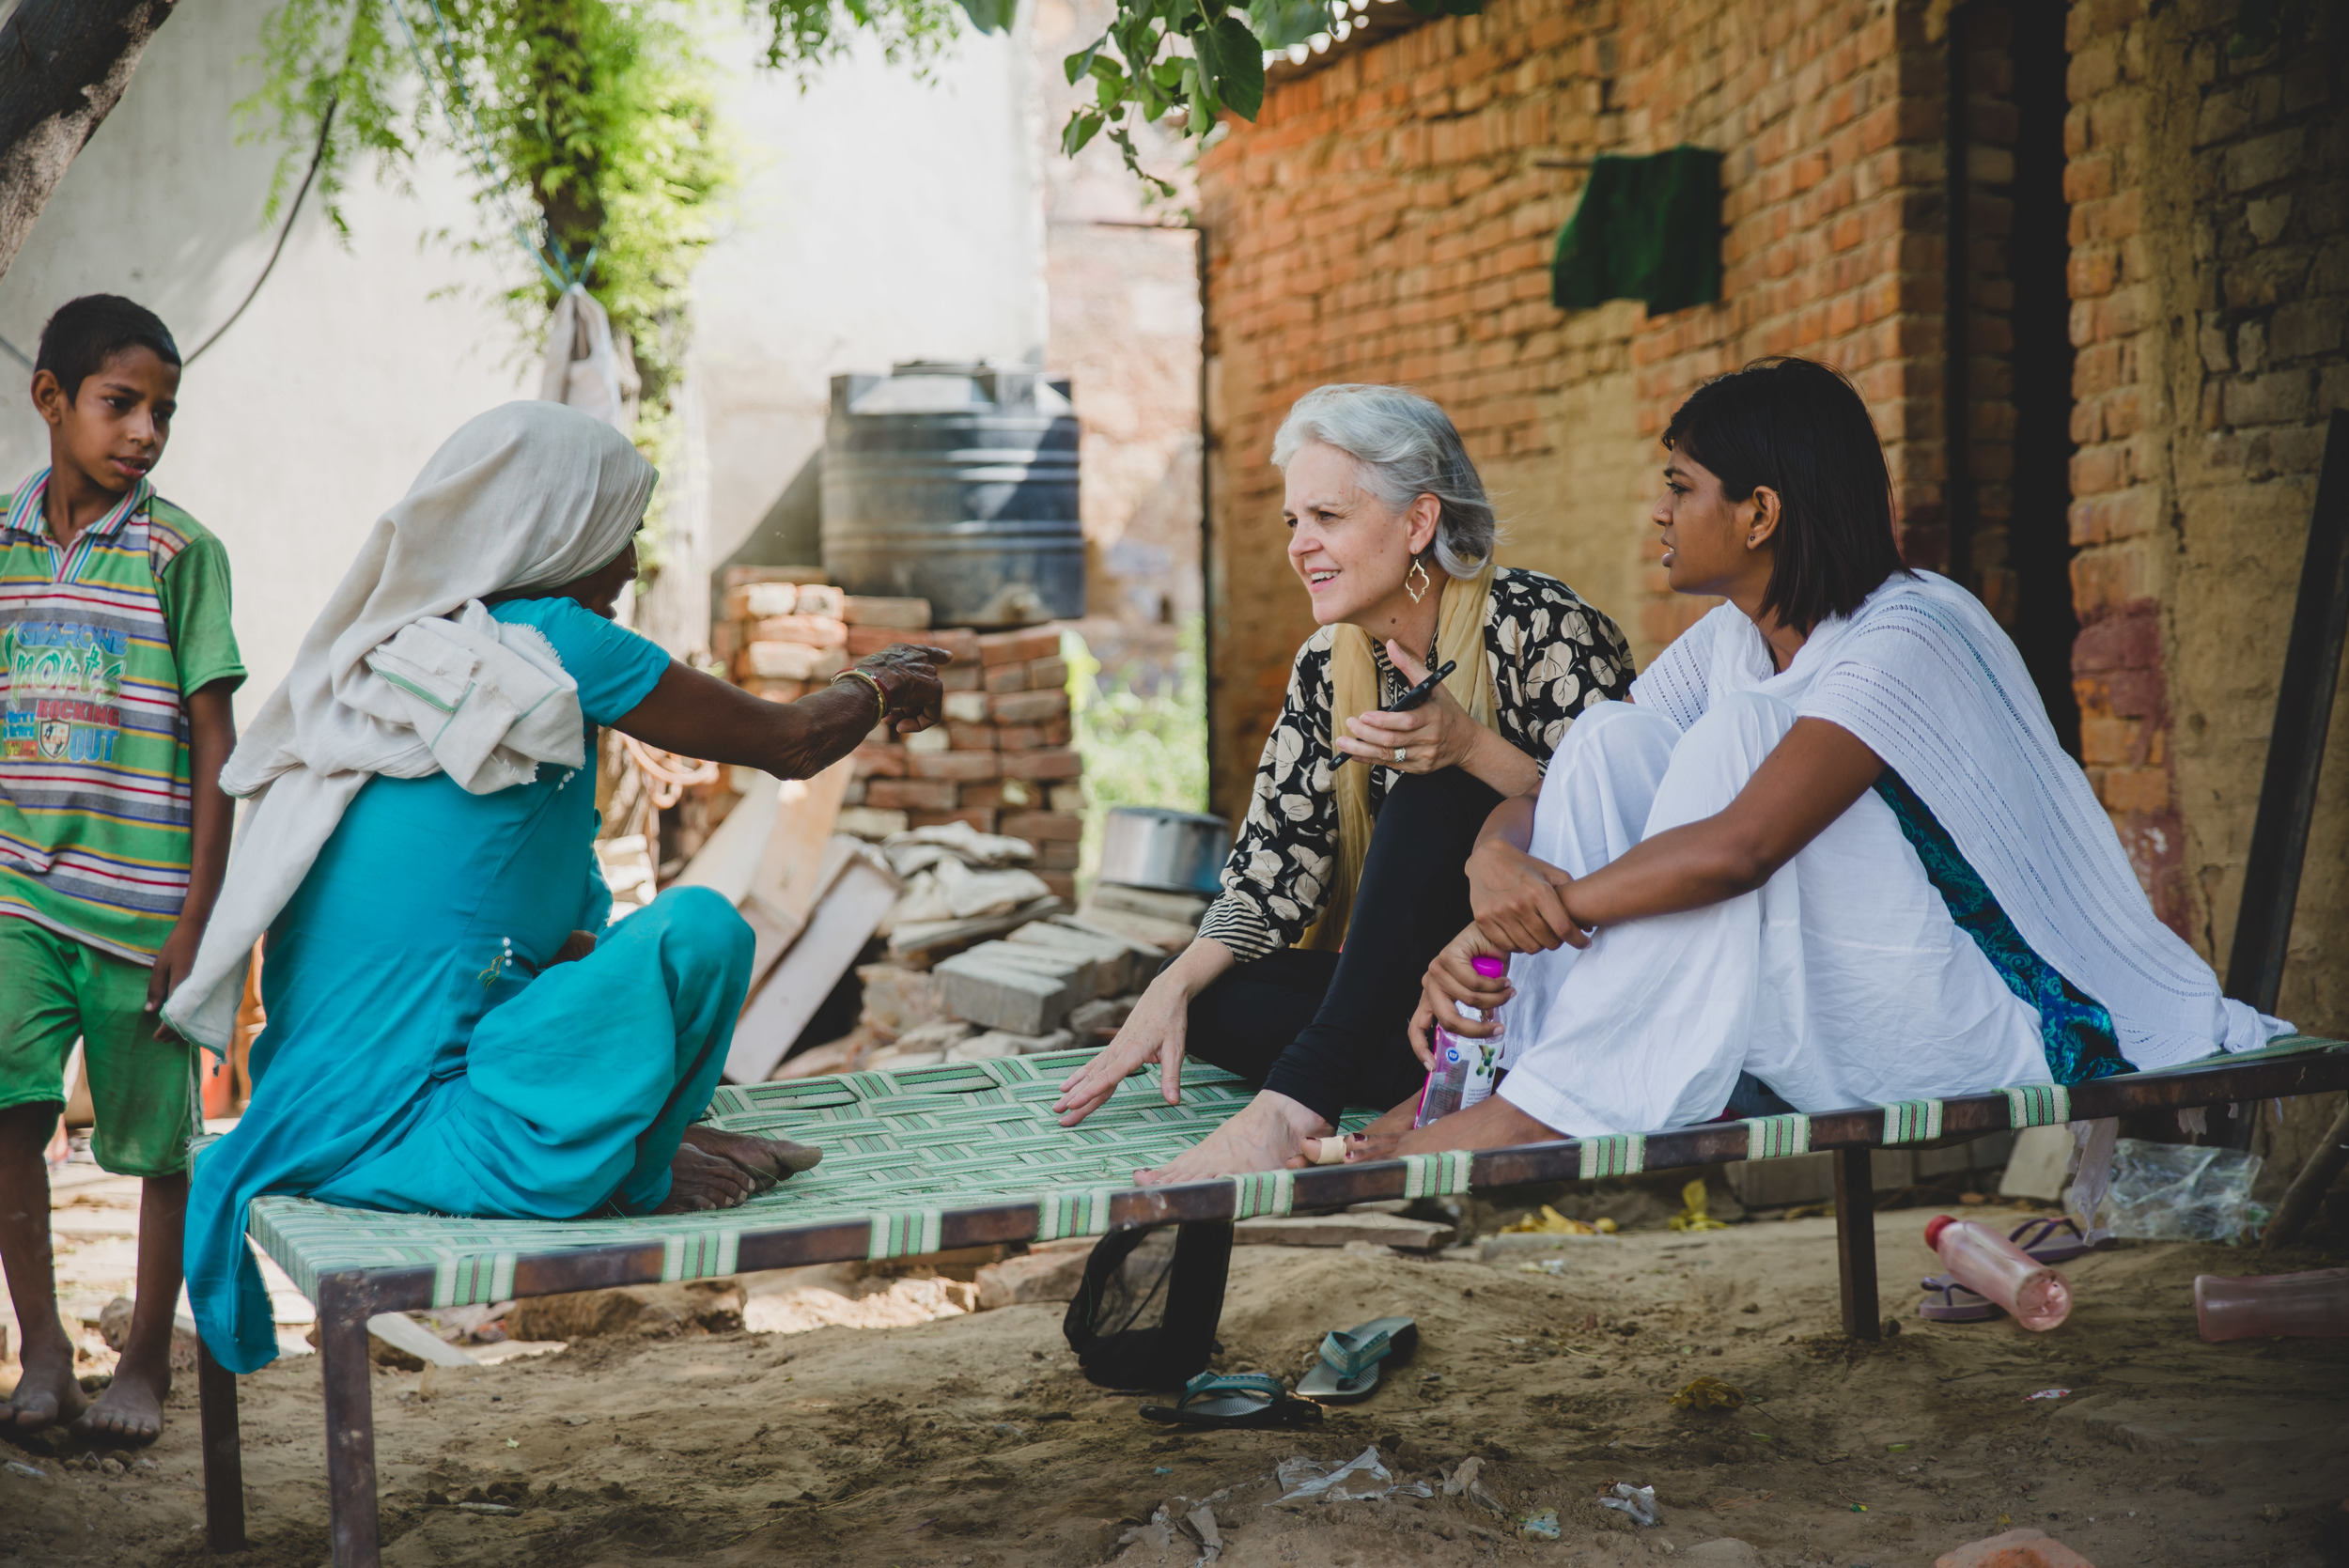 Rosemary Sherrod has been researching and conducting interviews on the psychology of women in India since June 2015. Her work not only aids India team members as they learn more about the culture and people of India, but also humanizes the women she interviews as their stories are heard and given value.